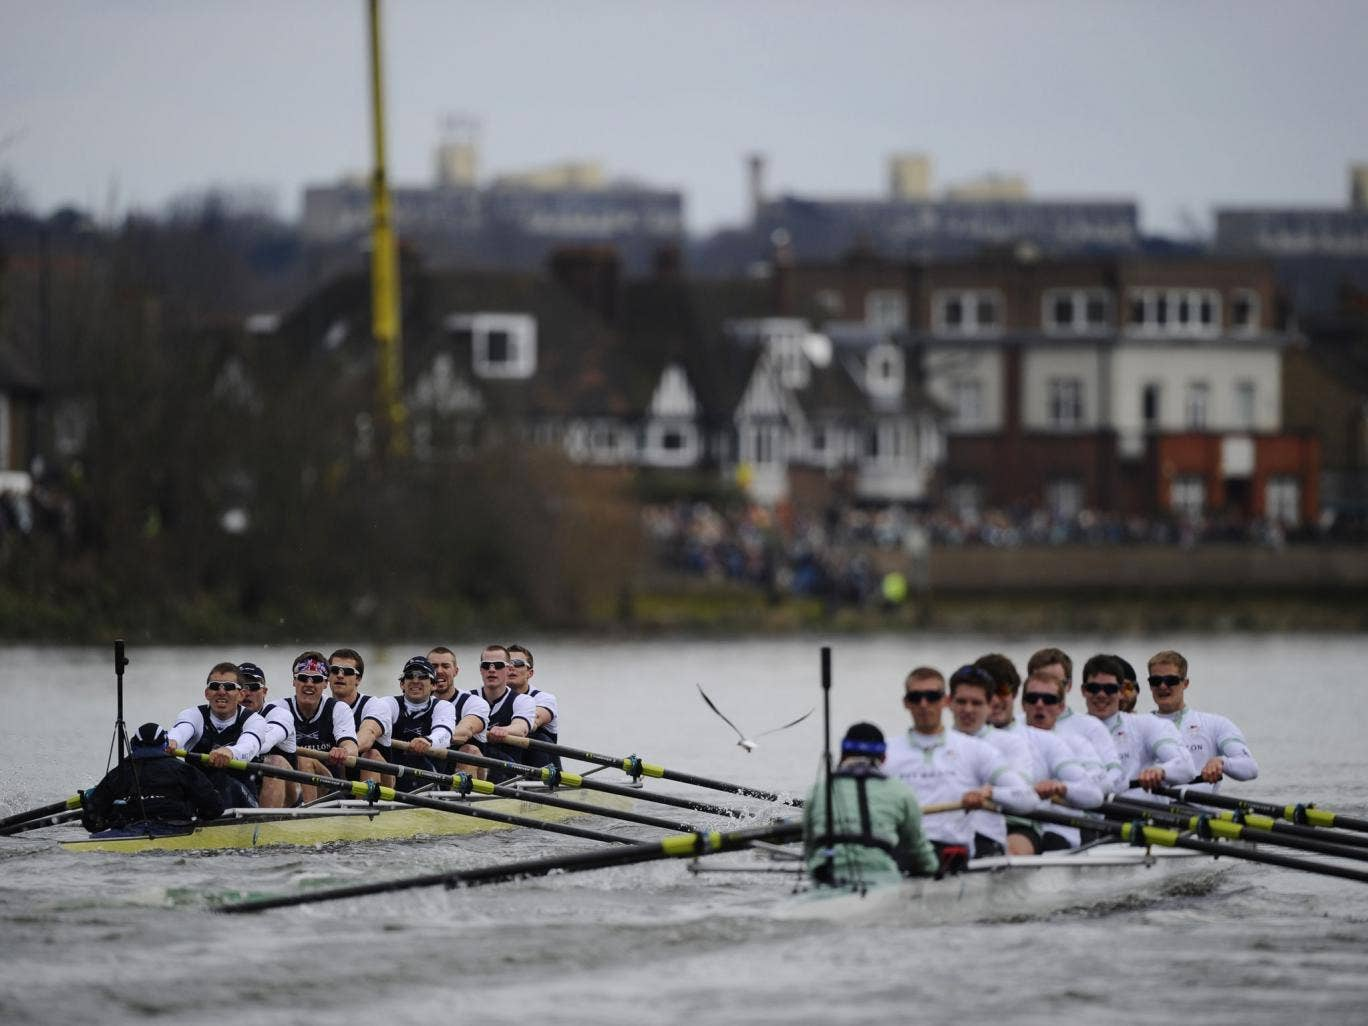 The Oxford University boat crew (L) competes against the Cambridge University crew during the annual boat race